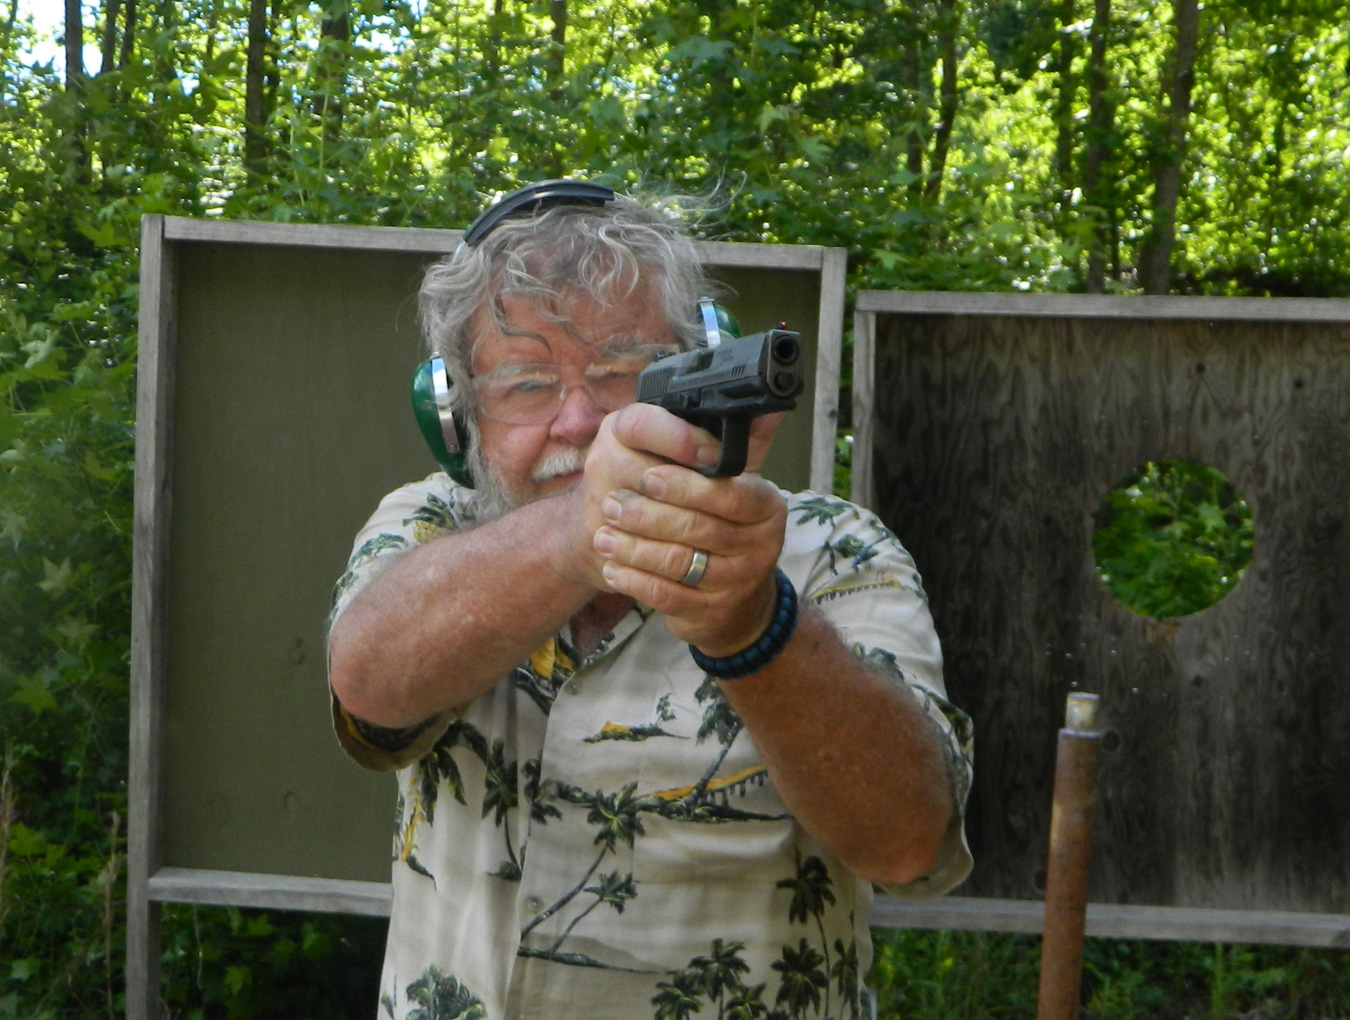 Bob Campbell shooting the Canik TP9SF Elite pistol